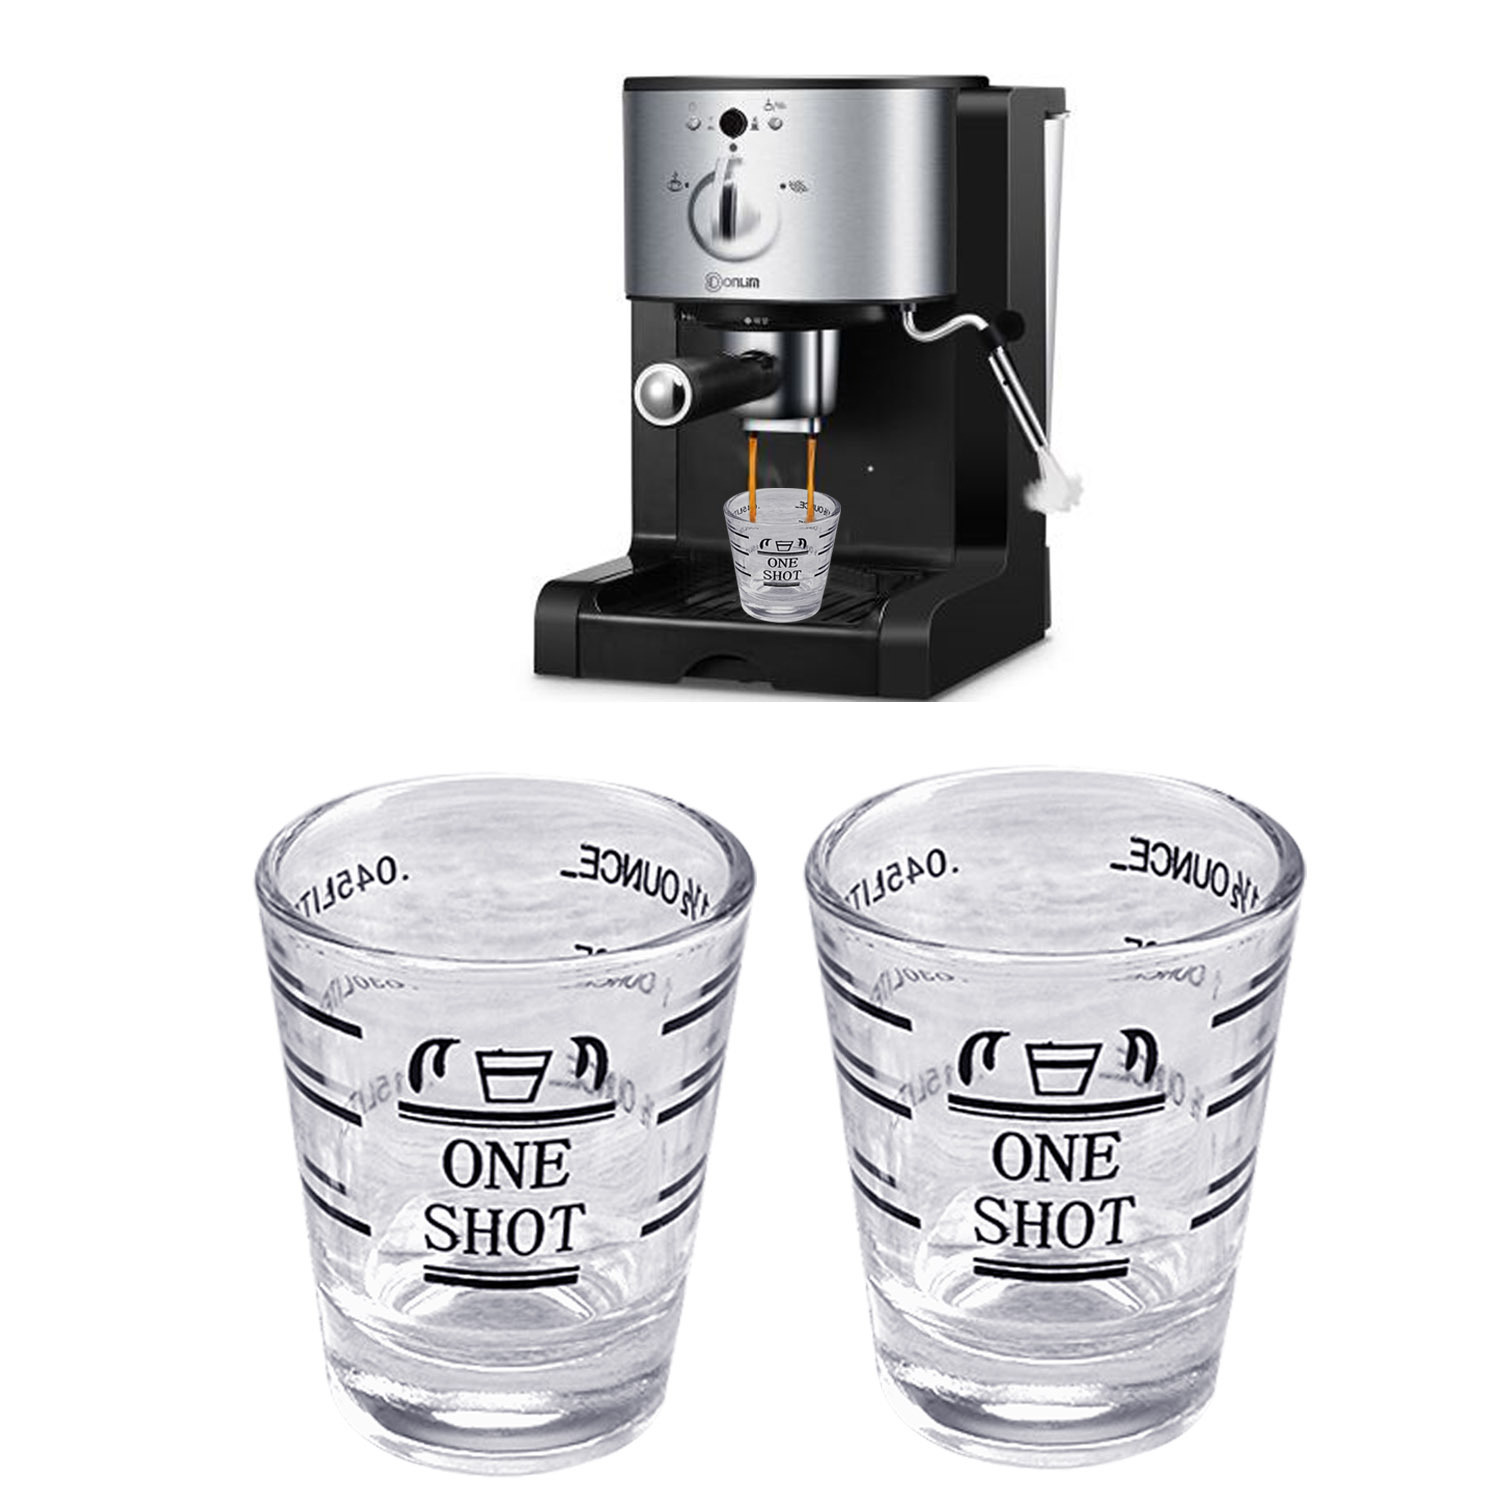 2Pcs 45ml 1.5oz Clear Glass Jigger Measuring Cup With Ml Oz 2 Measurement Unit For Home Espresso Wine Tools